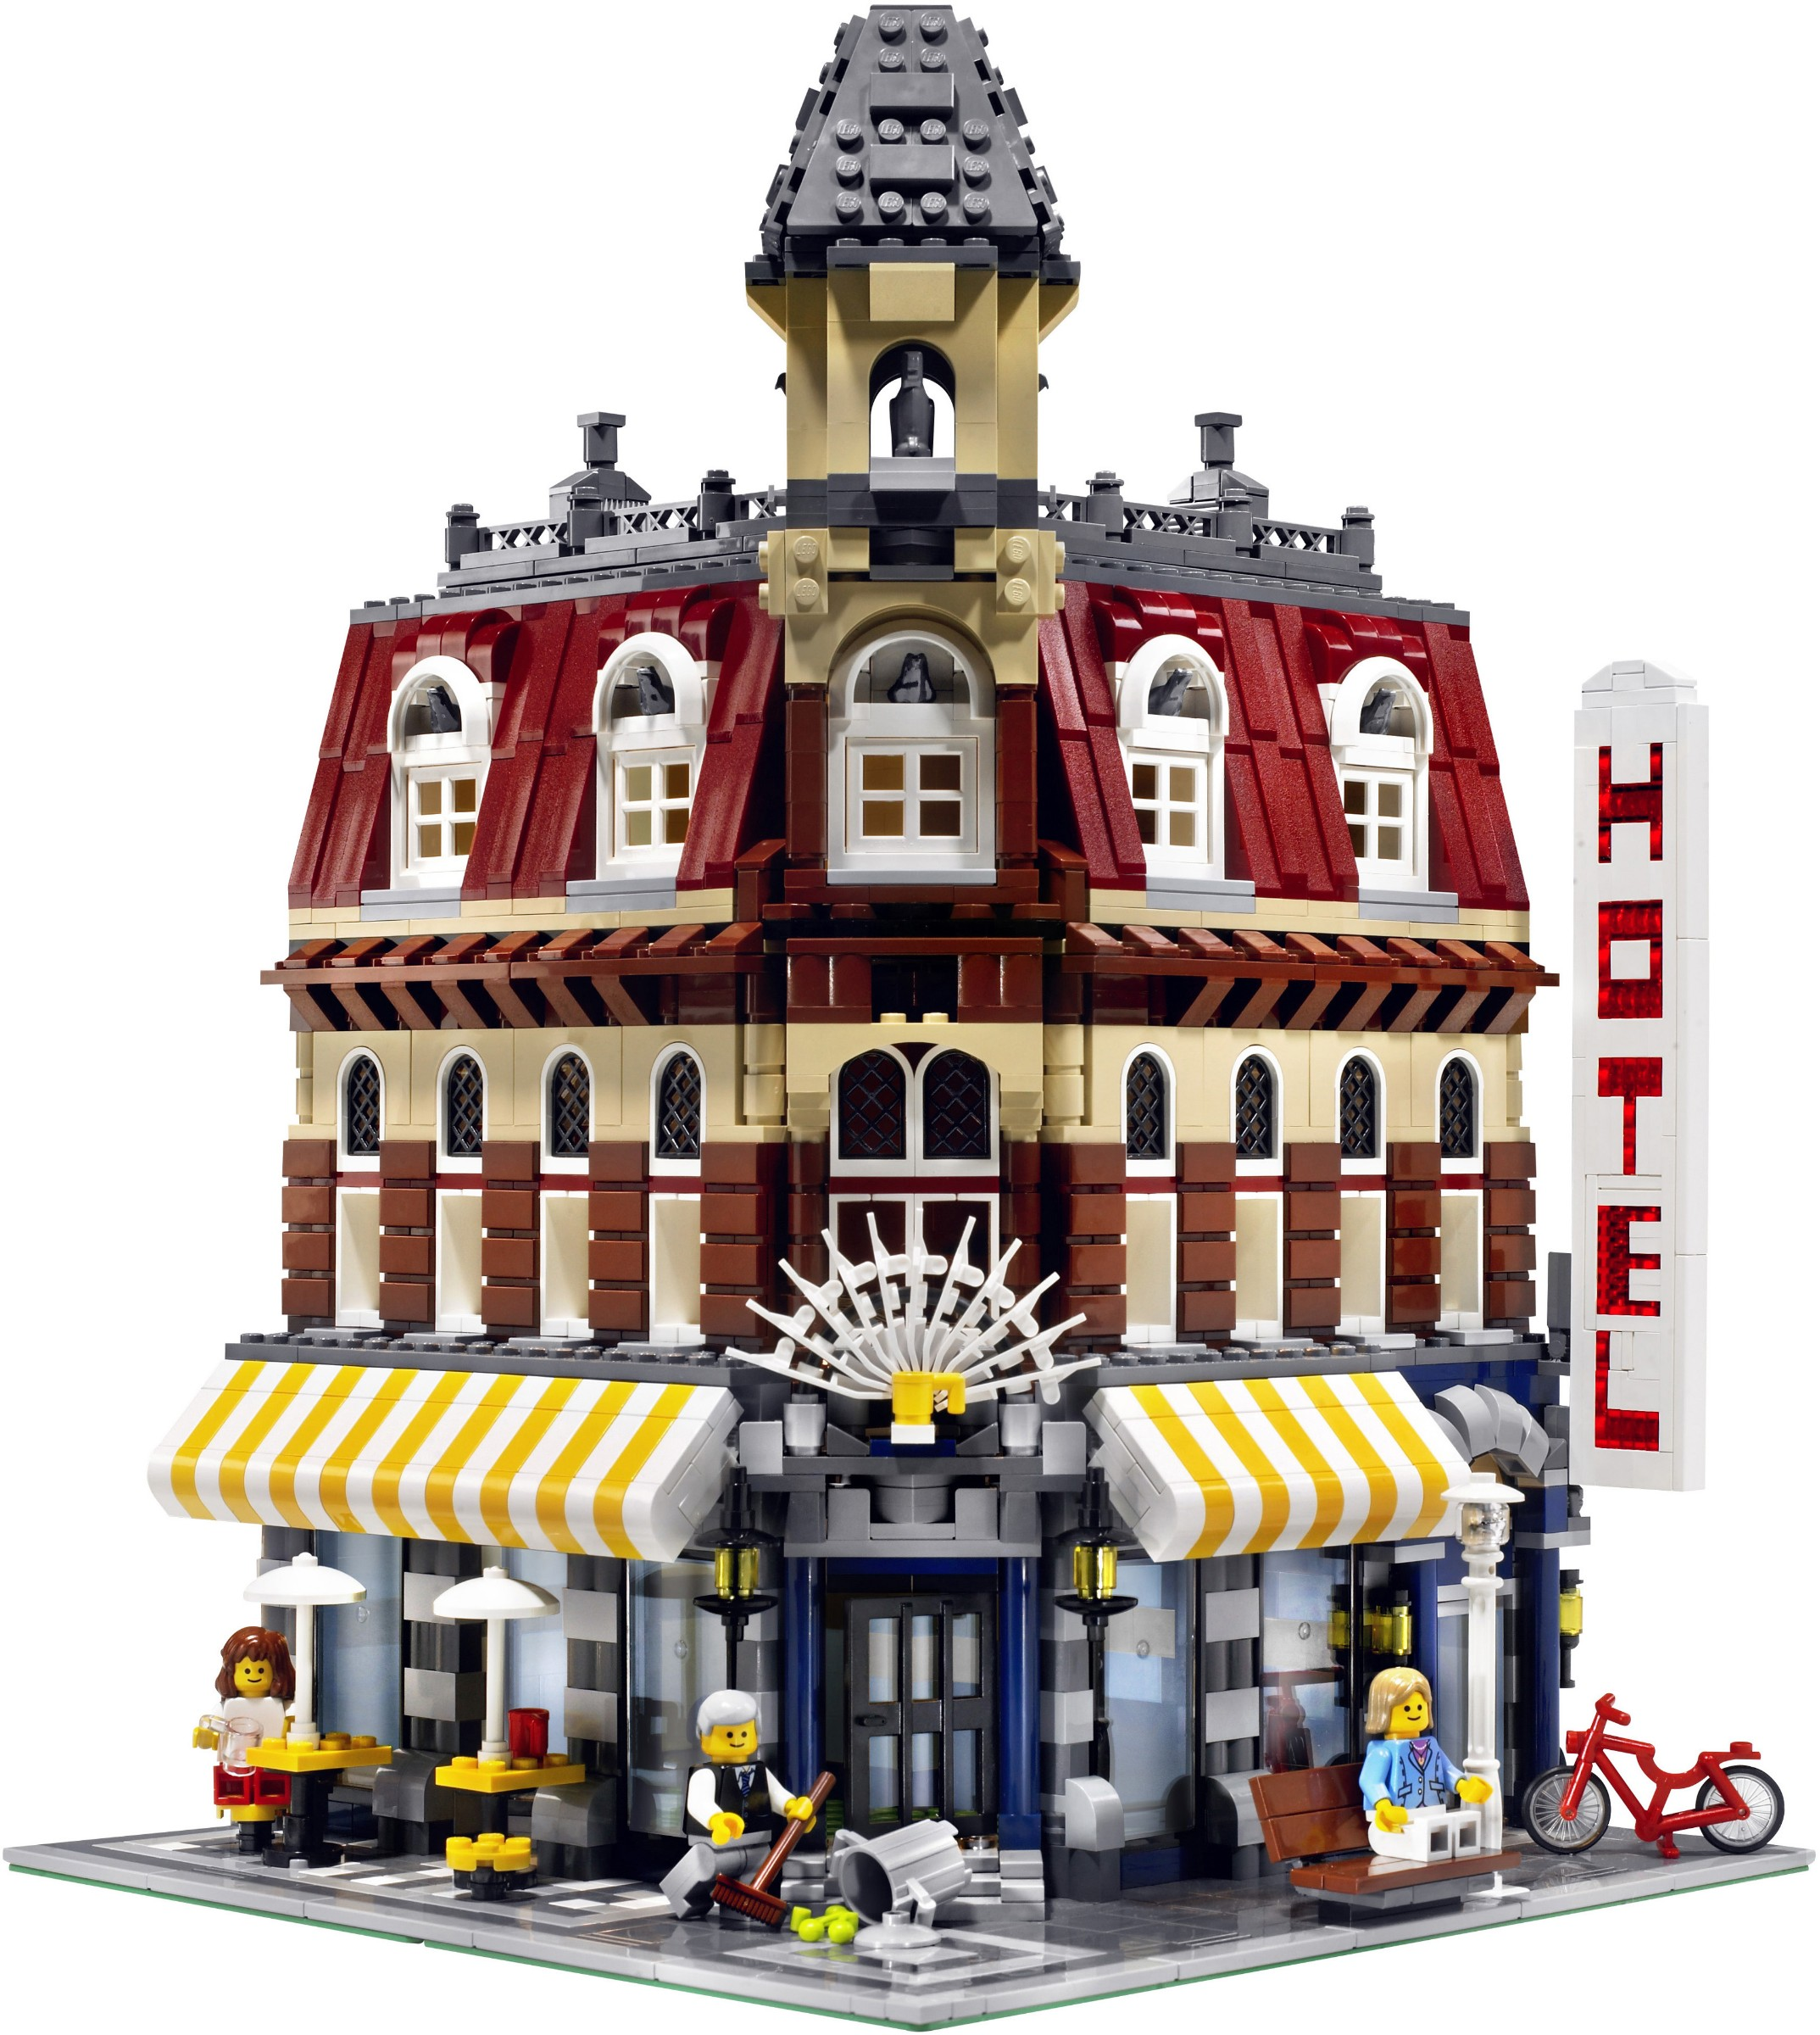 Advanced Models   Modular Buildings   Brickset  LEGO set guide and     Cafe Corner